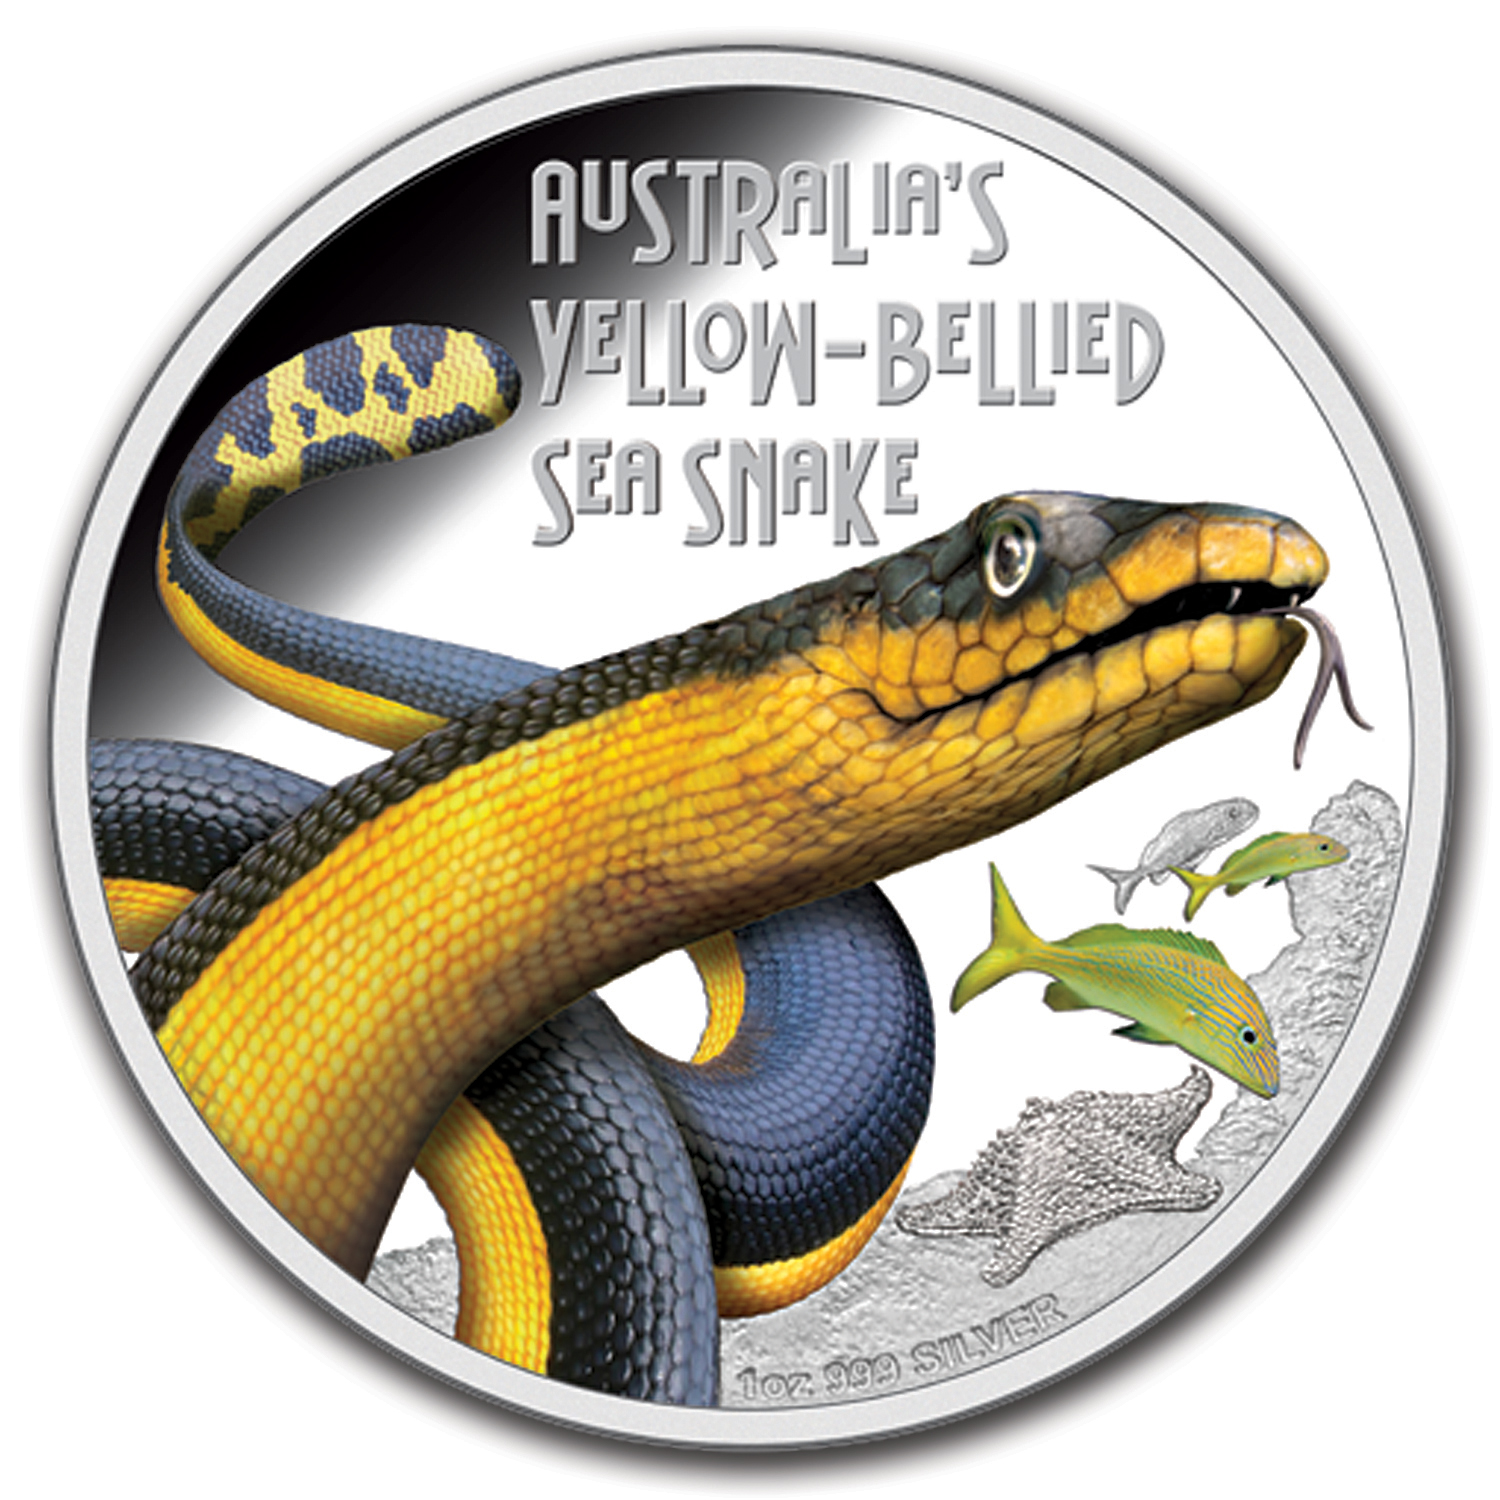 2013 Australia 1 oz Silver Yellow-Bellied Snake Proof